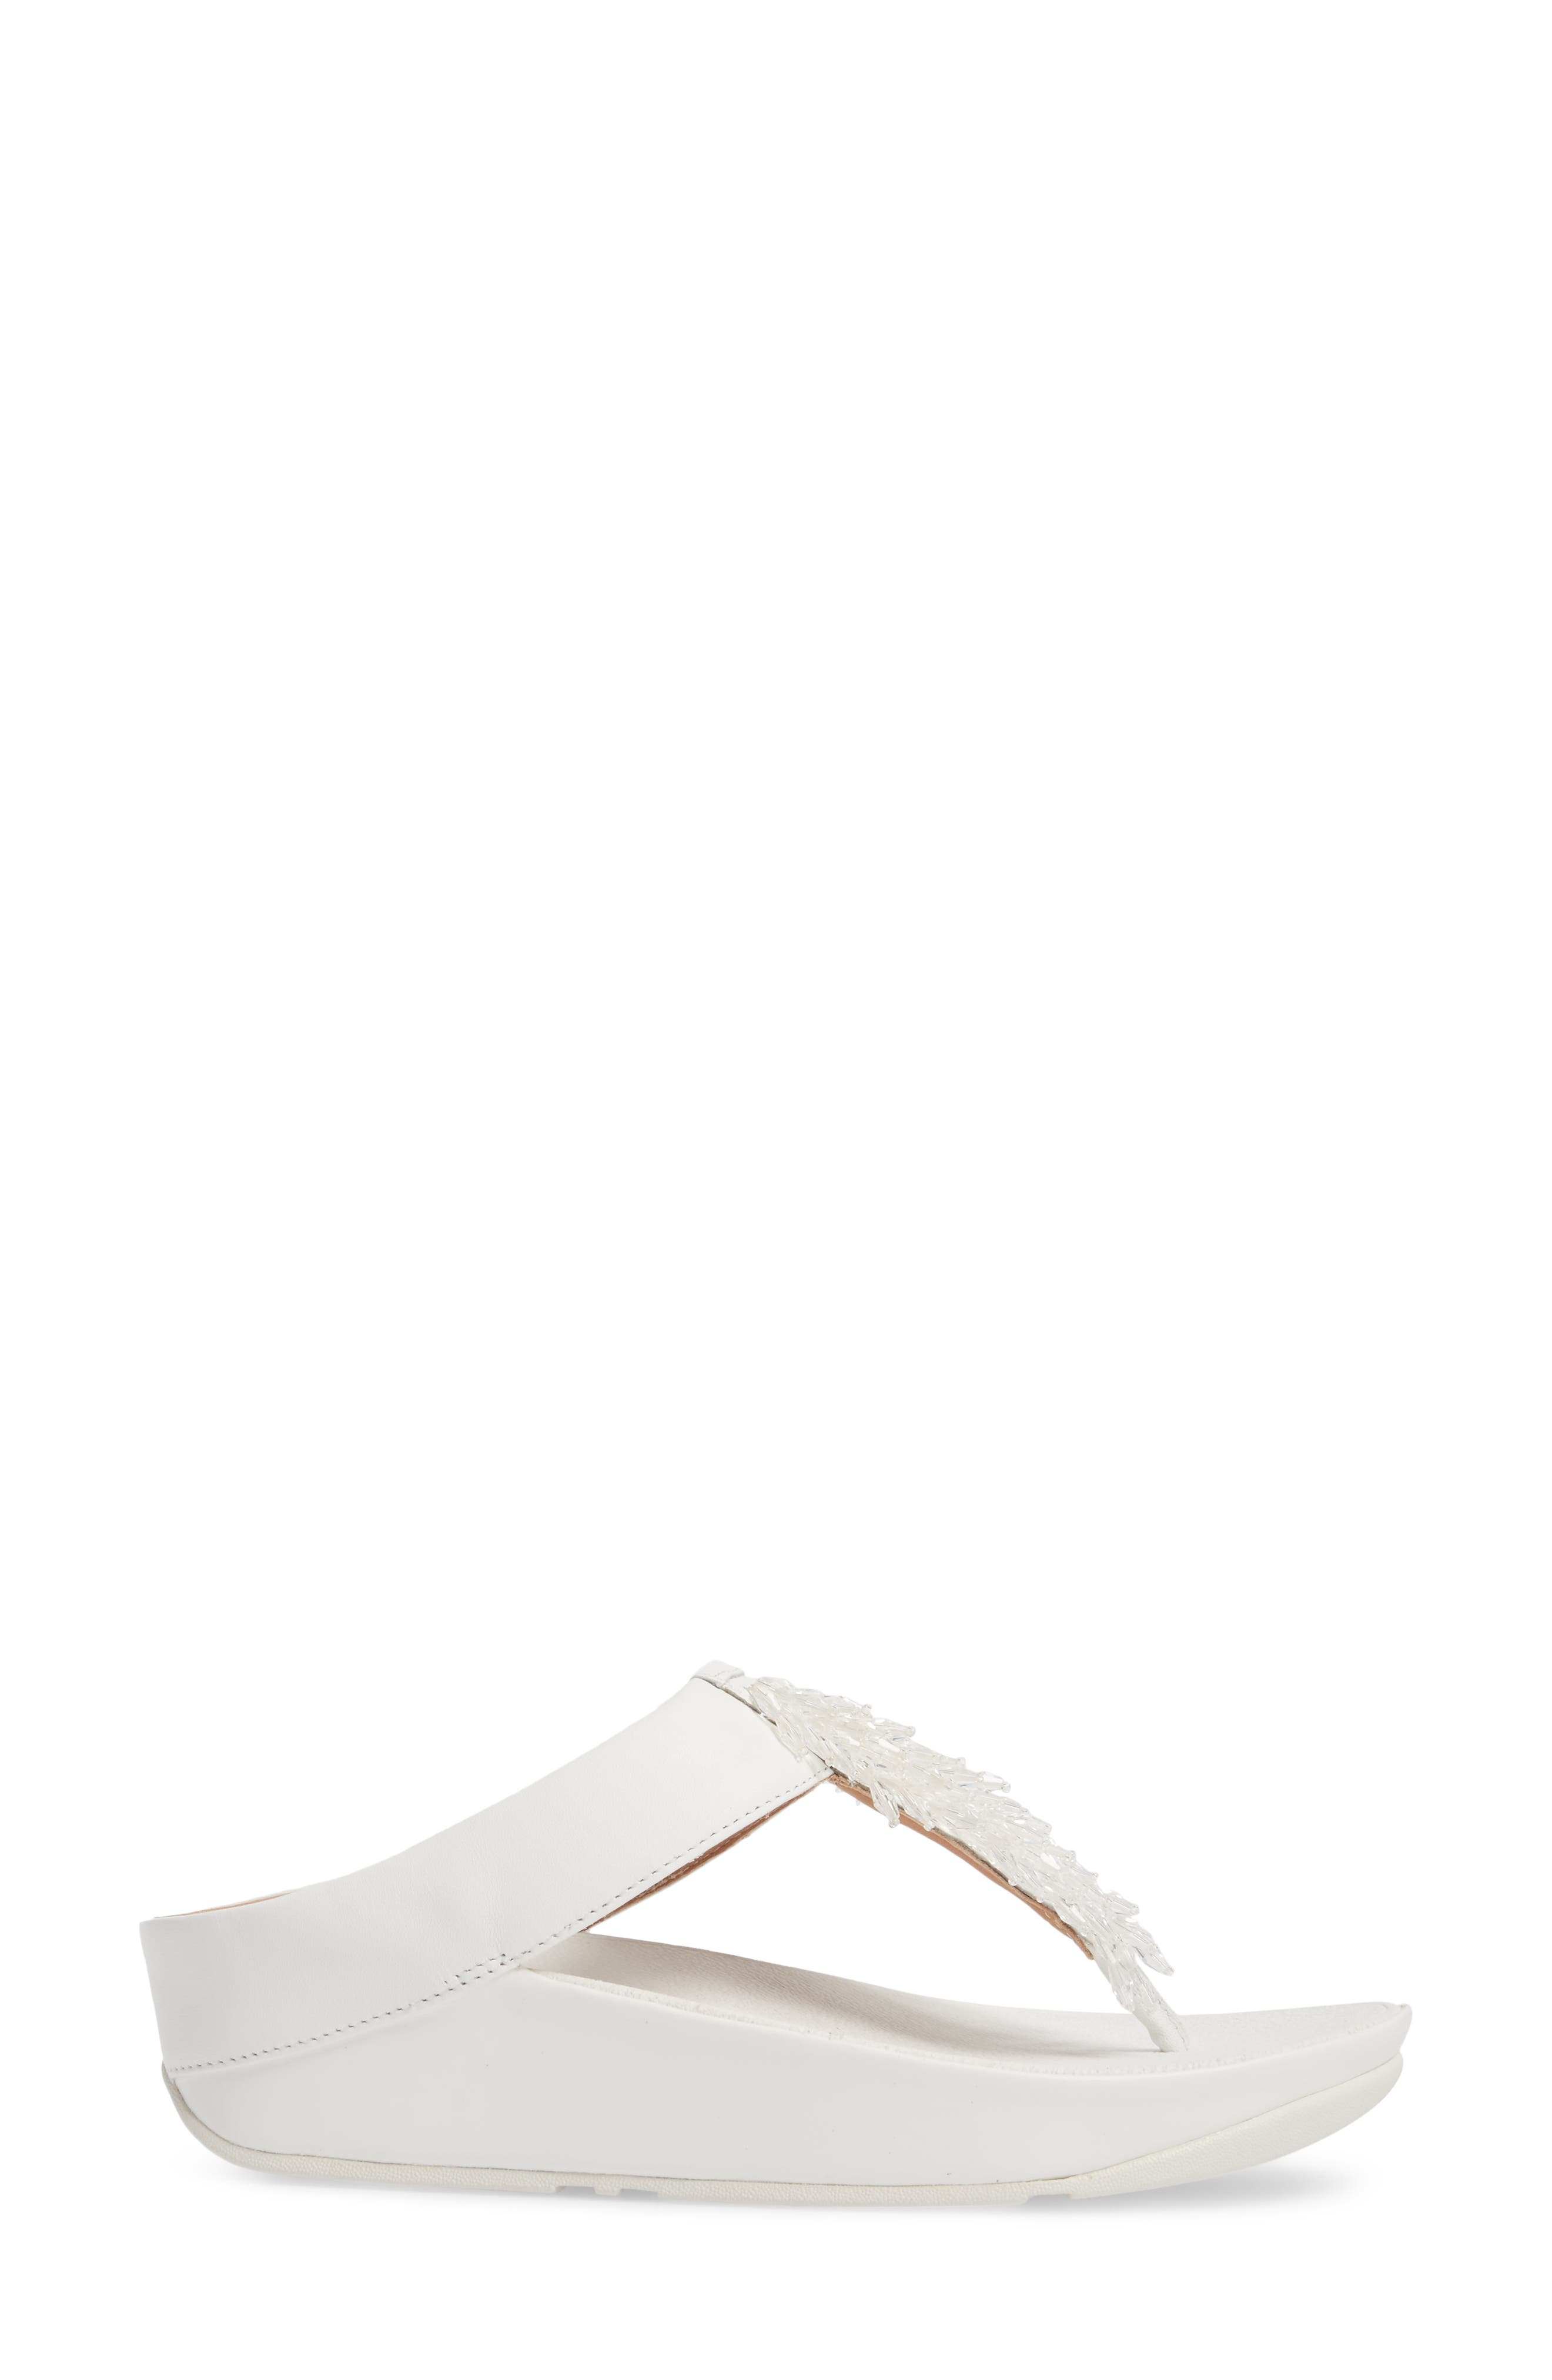 FITFLOP,                             Rumba Sandal,                             Alternate thumbnail 3, color,                             URBAN WHITE LEATHER